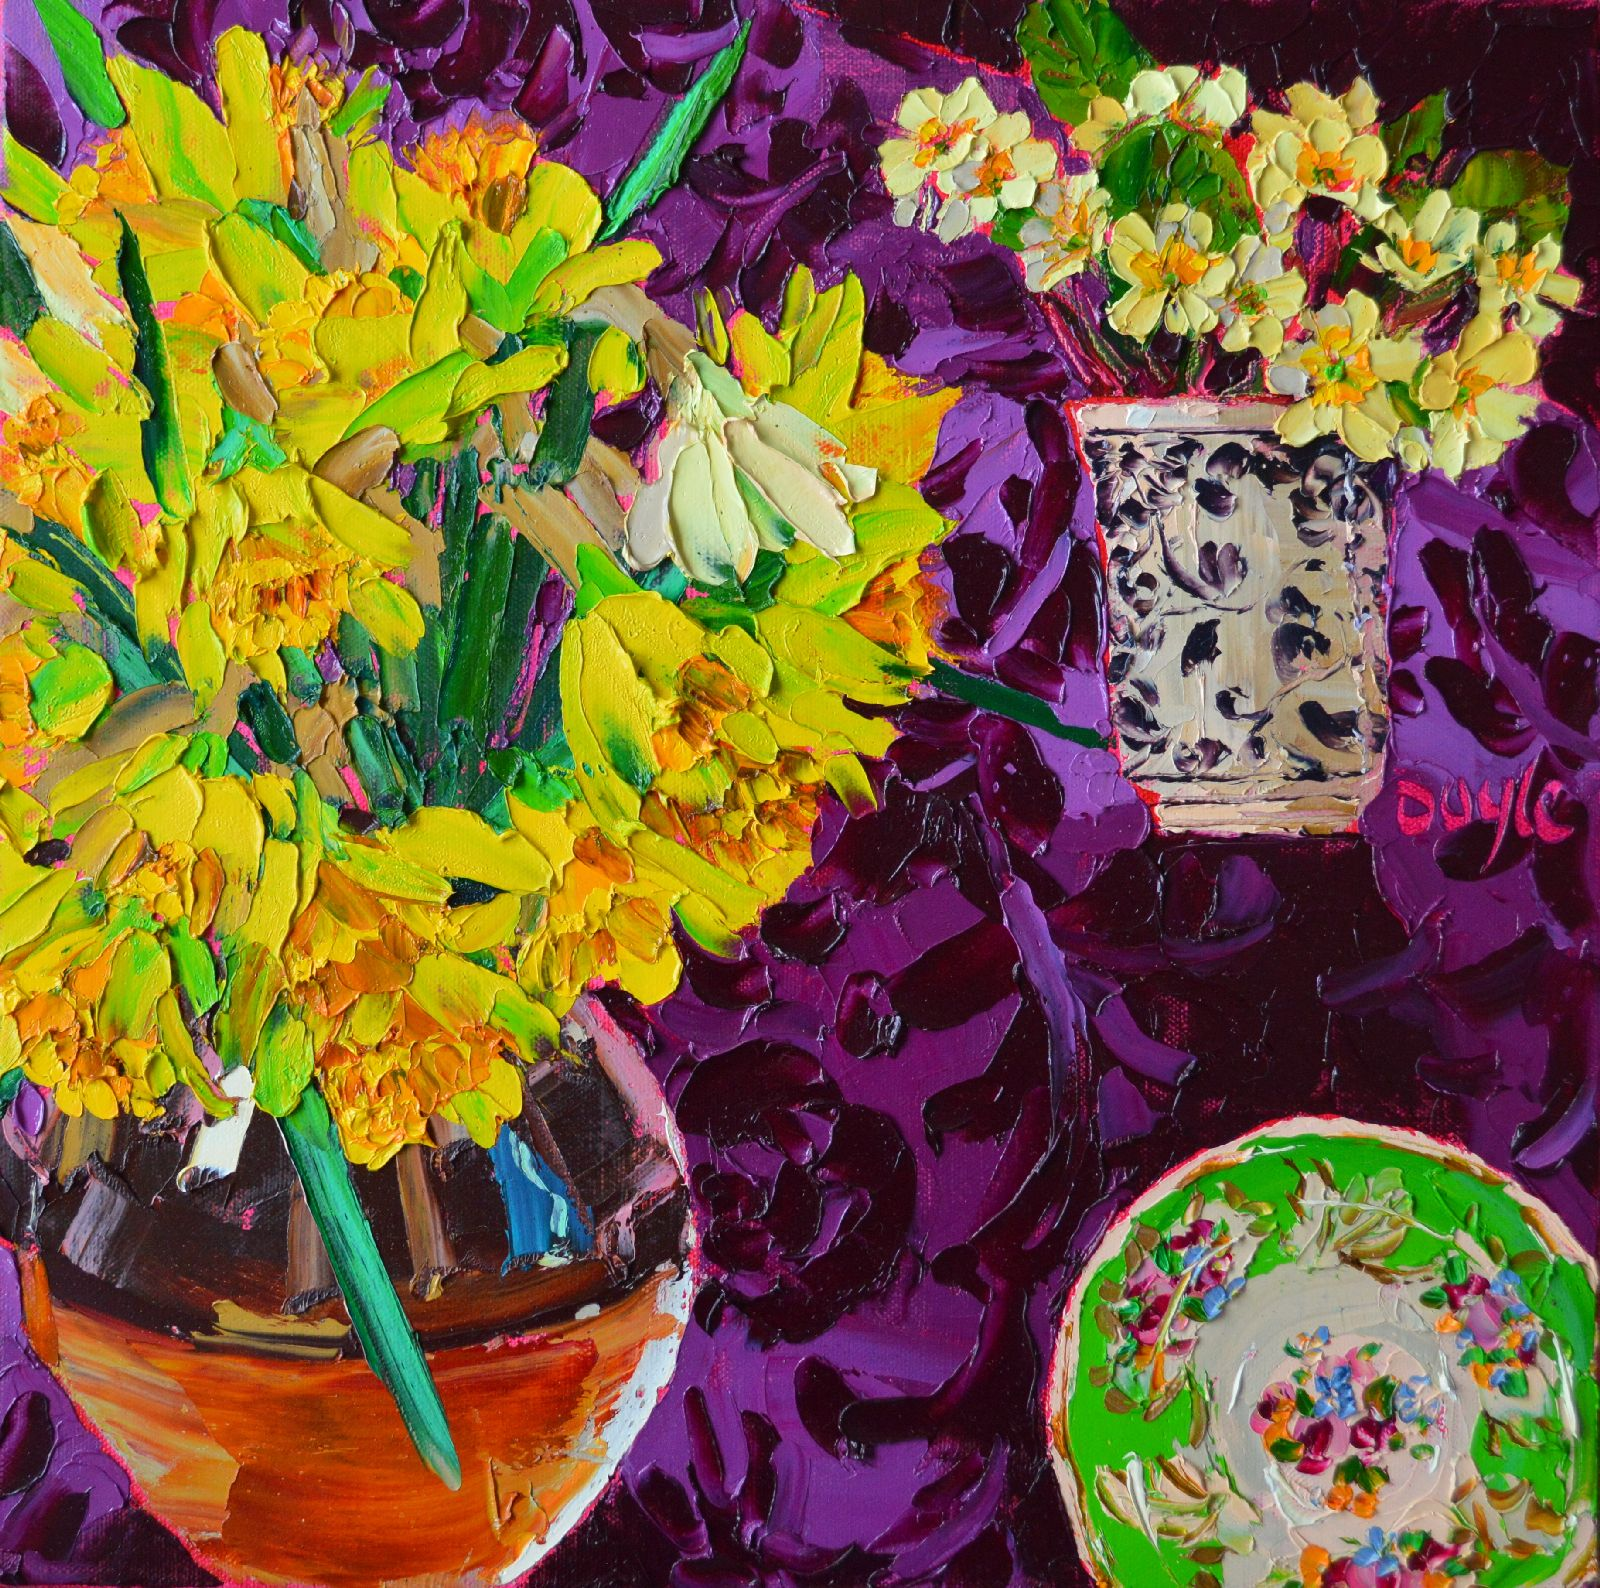 Primroses and Daffodils by Lucy Doyle